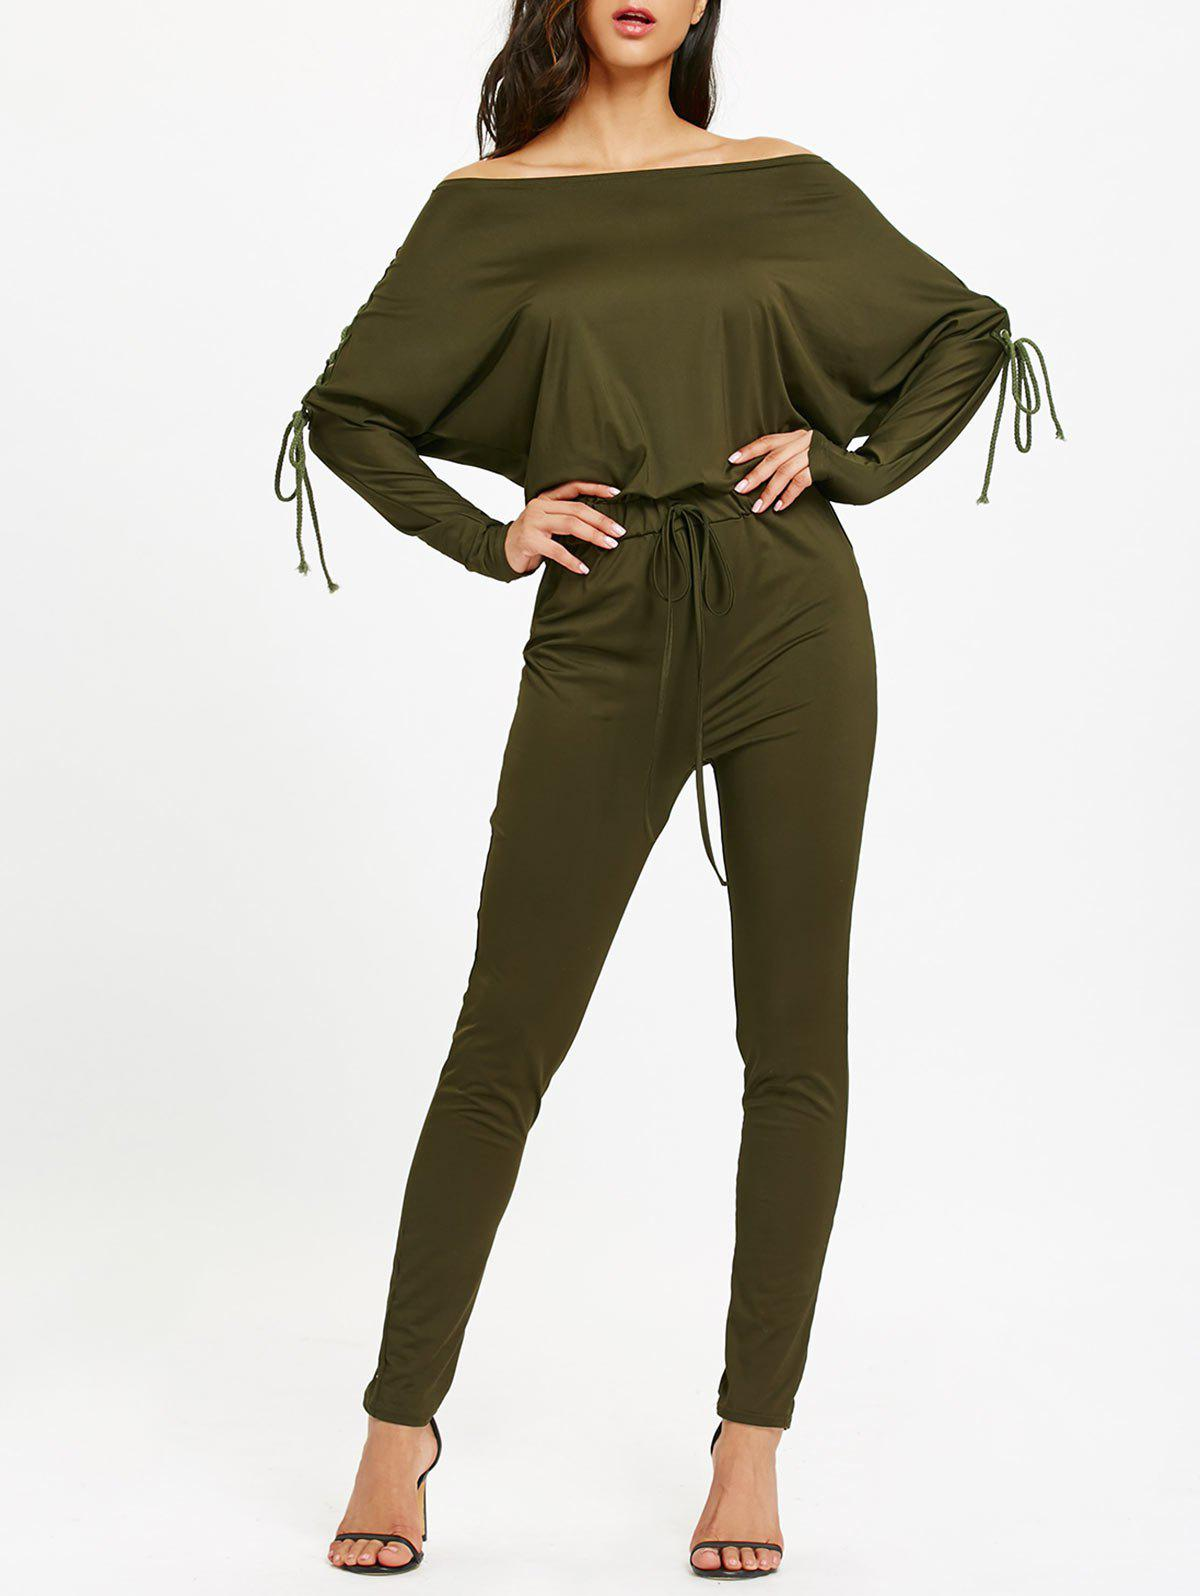 New Lace Up Off The Shoulder High Waist Jumpsuit